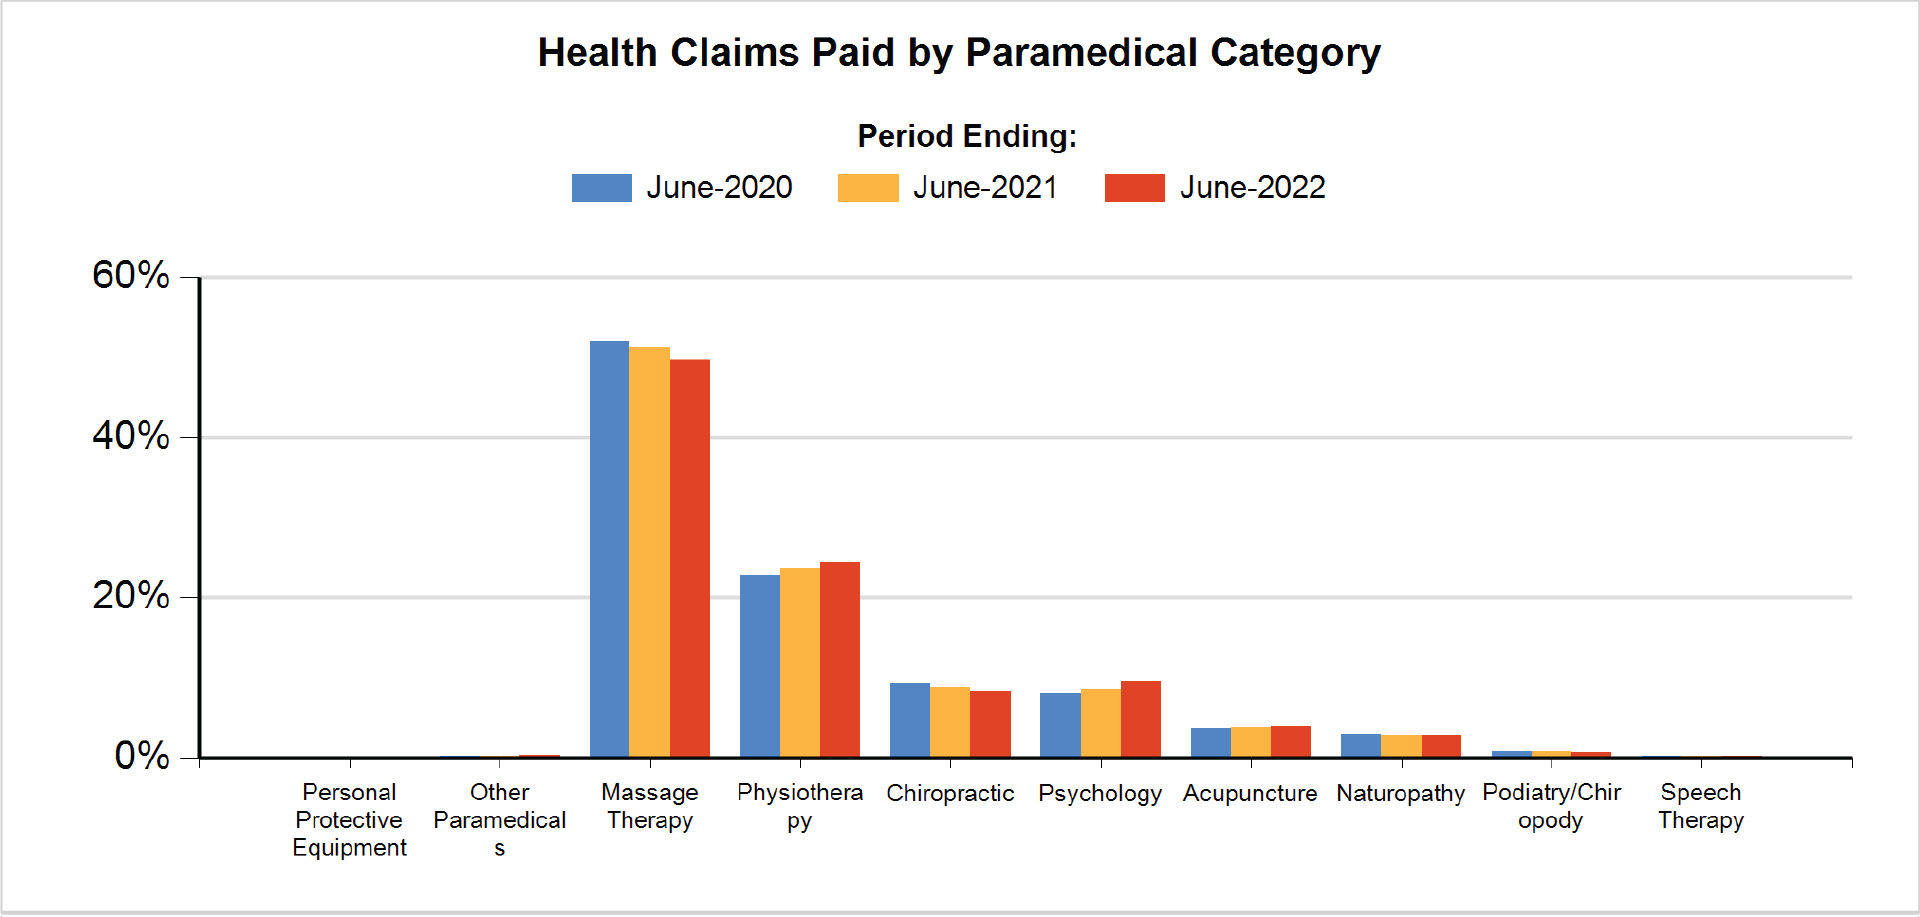 Health Claims Paid By Paramedical Category